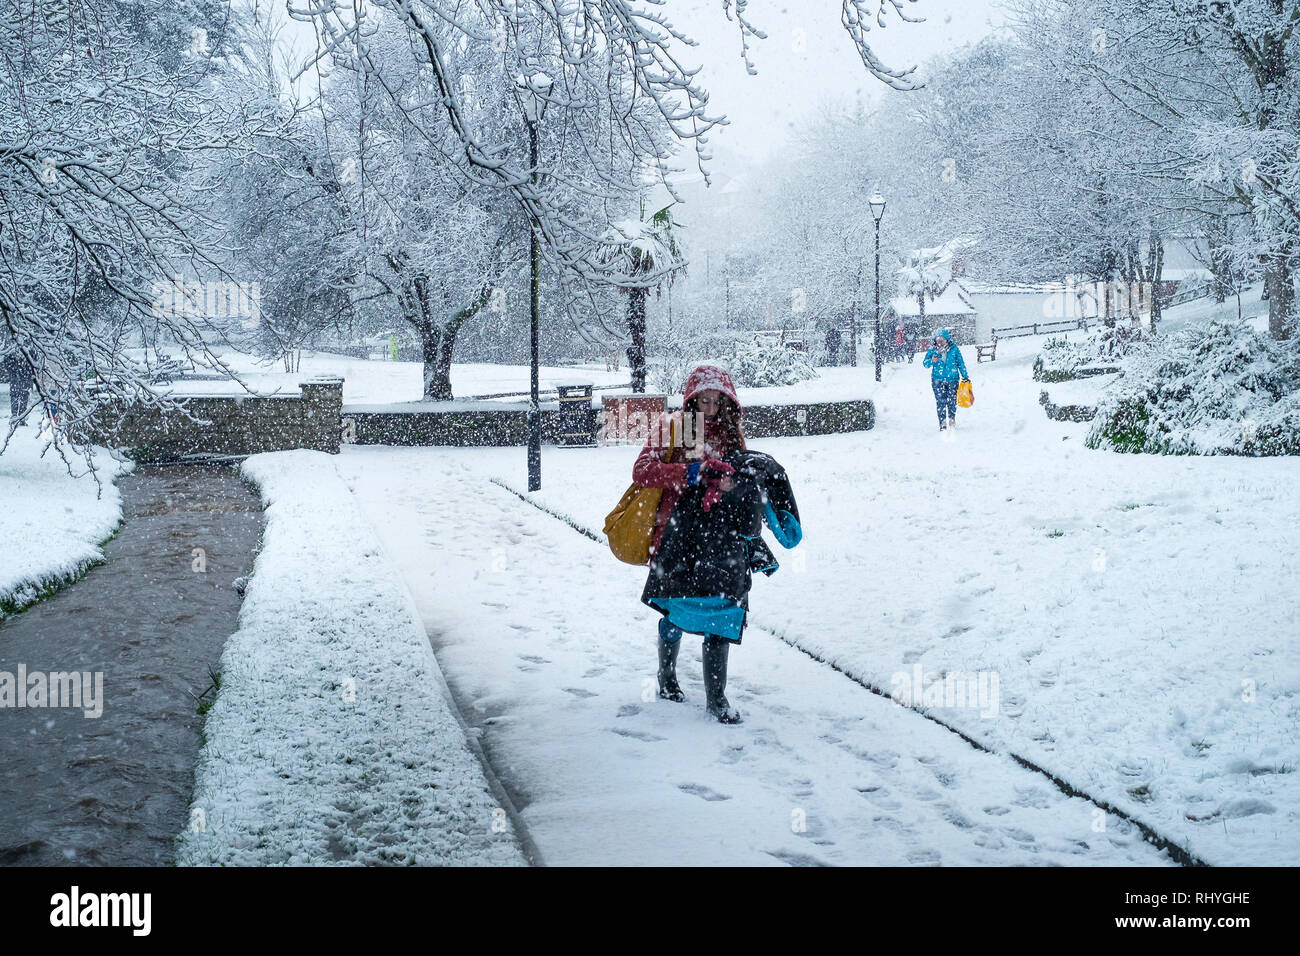 People walking through Trenance Gardens in heavy snowfall in Trenance Park in Newquay in Cornwall. - Stock Image